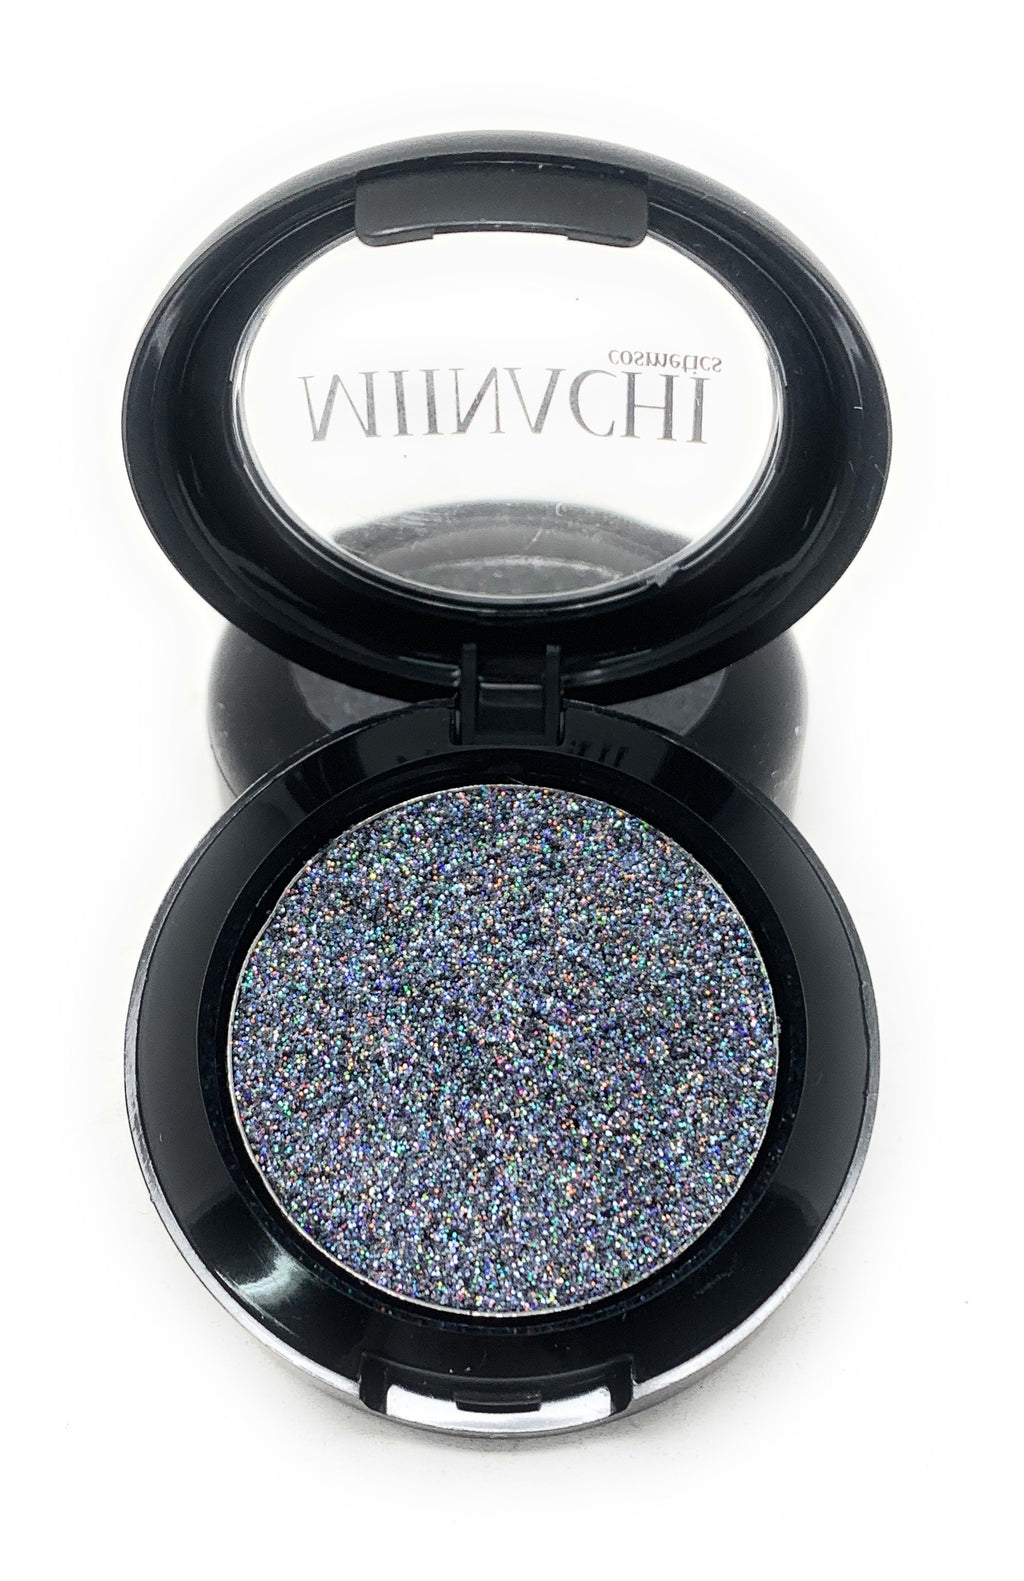 Single Pressed Glitter in the shade Smoke JUMBO Size, No Glue Needed, In Compact, Pigmented, No Fall Out, Glitter, Cosmetic Grade Glitter